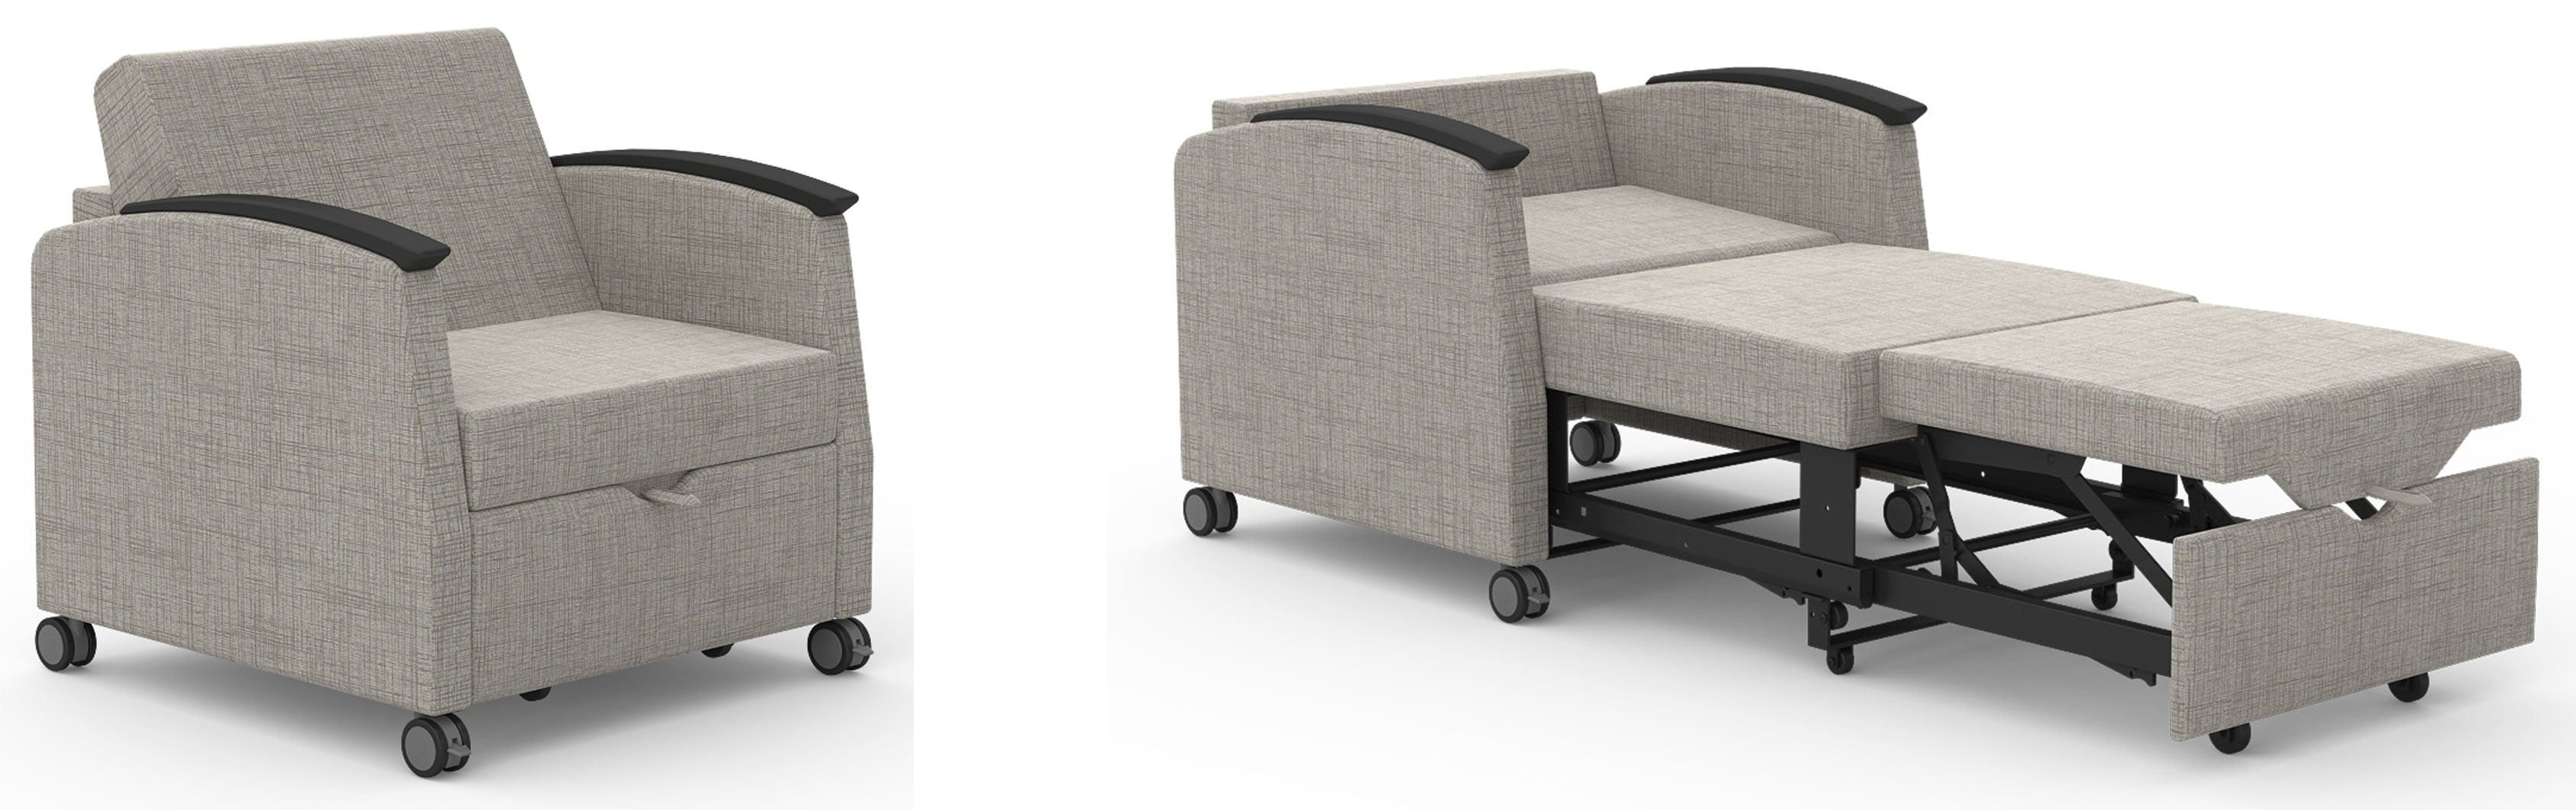 Sleep Recliner Chair Specialty Furniture